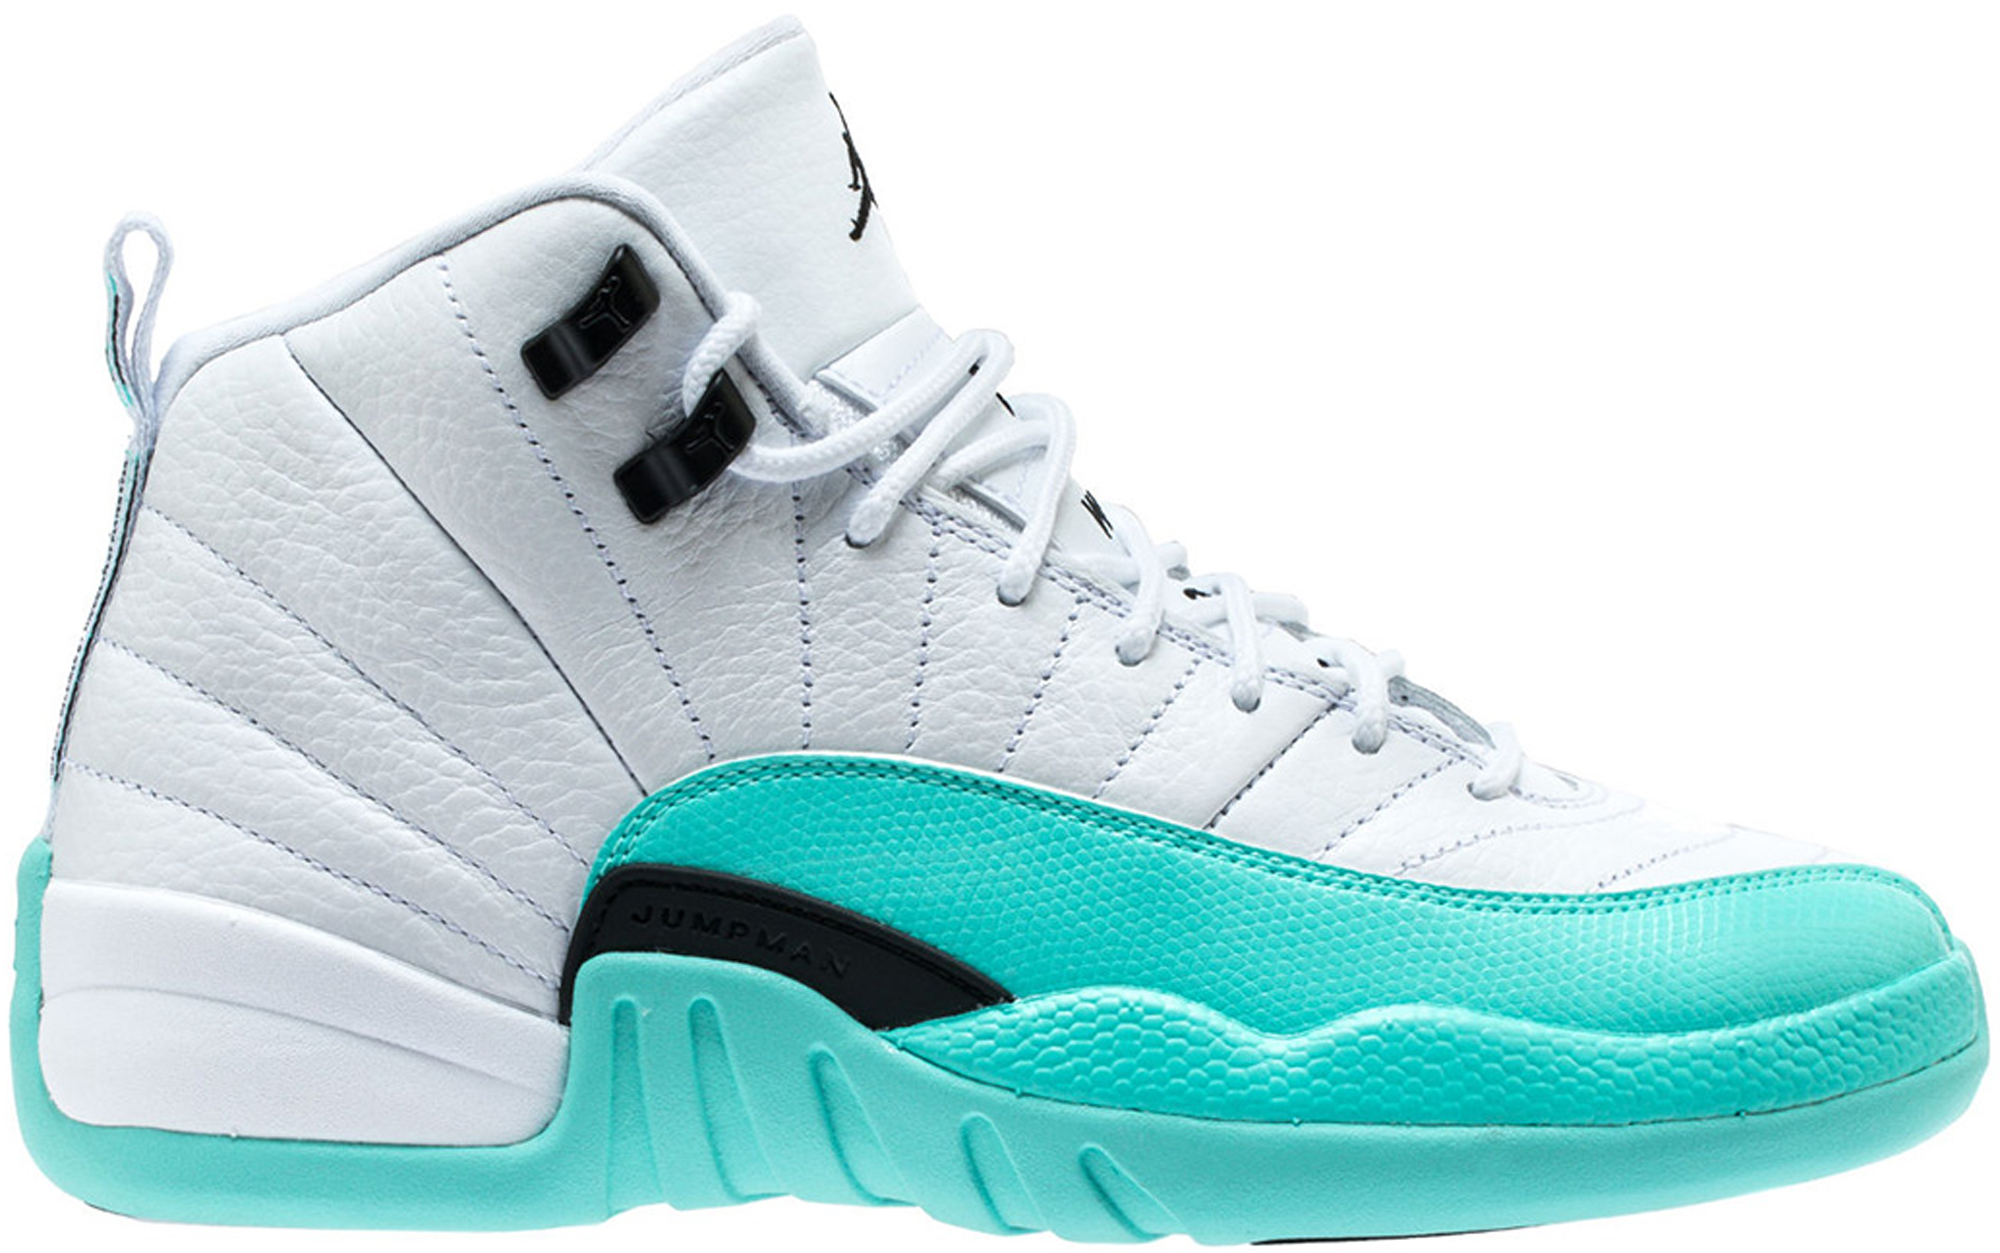 timeless design a6c43 8b1a3 Girls Air Jordan 12 Light Aqua